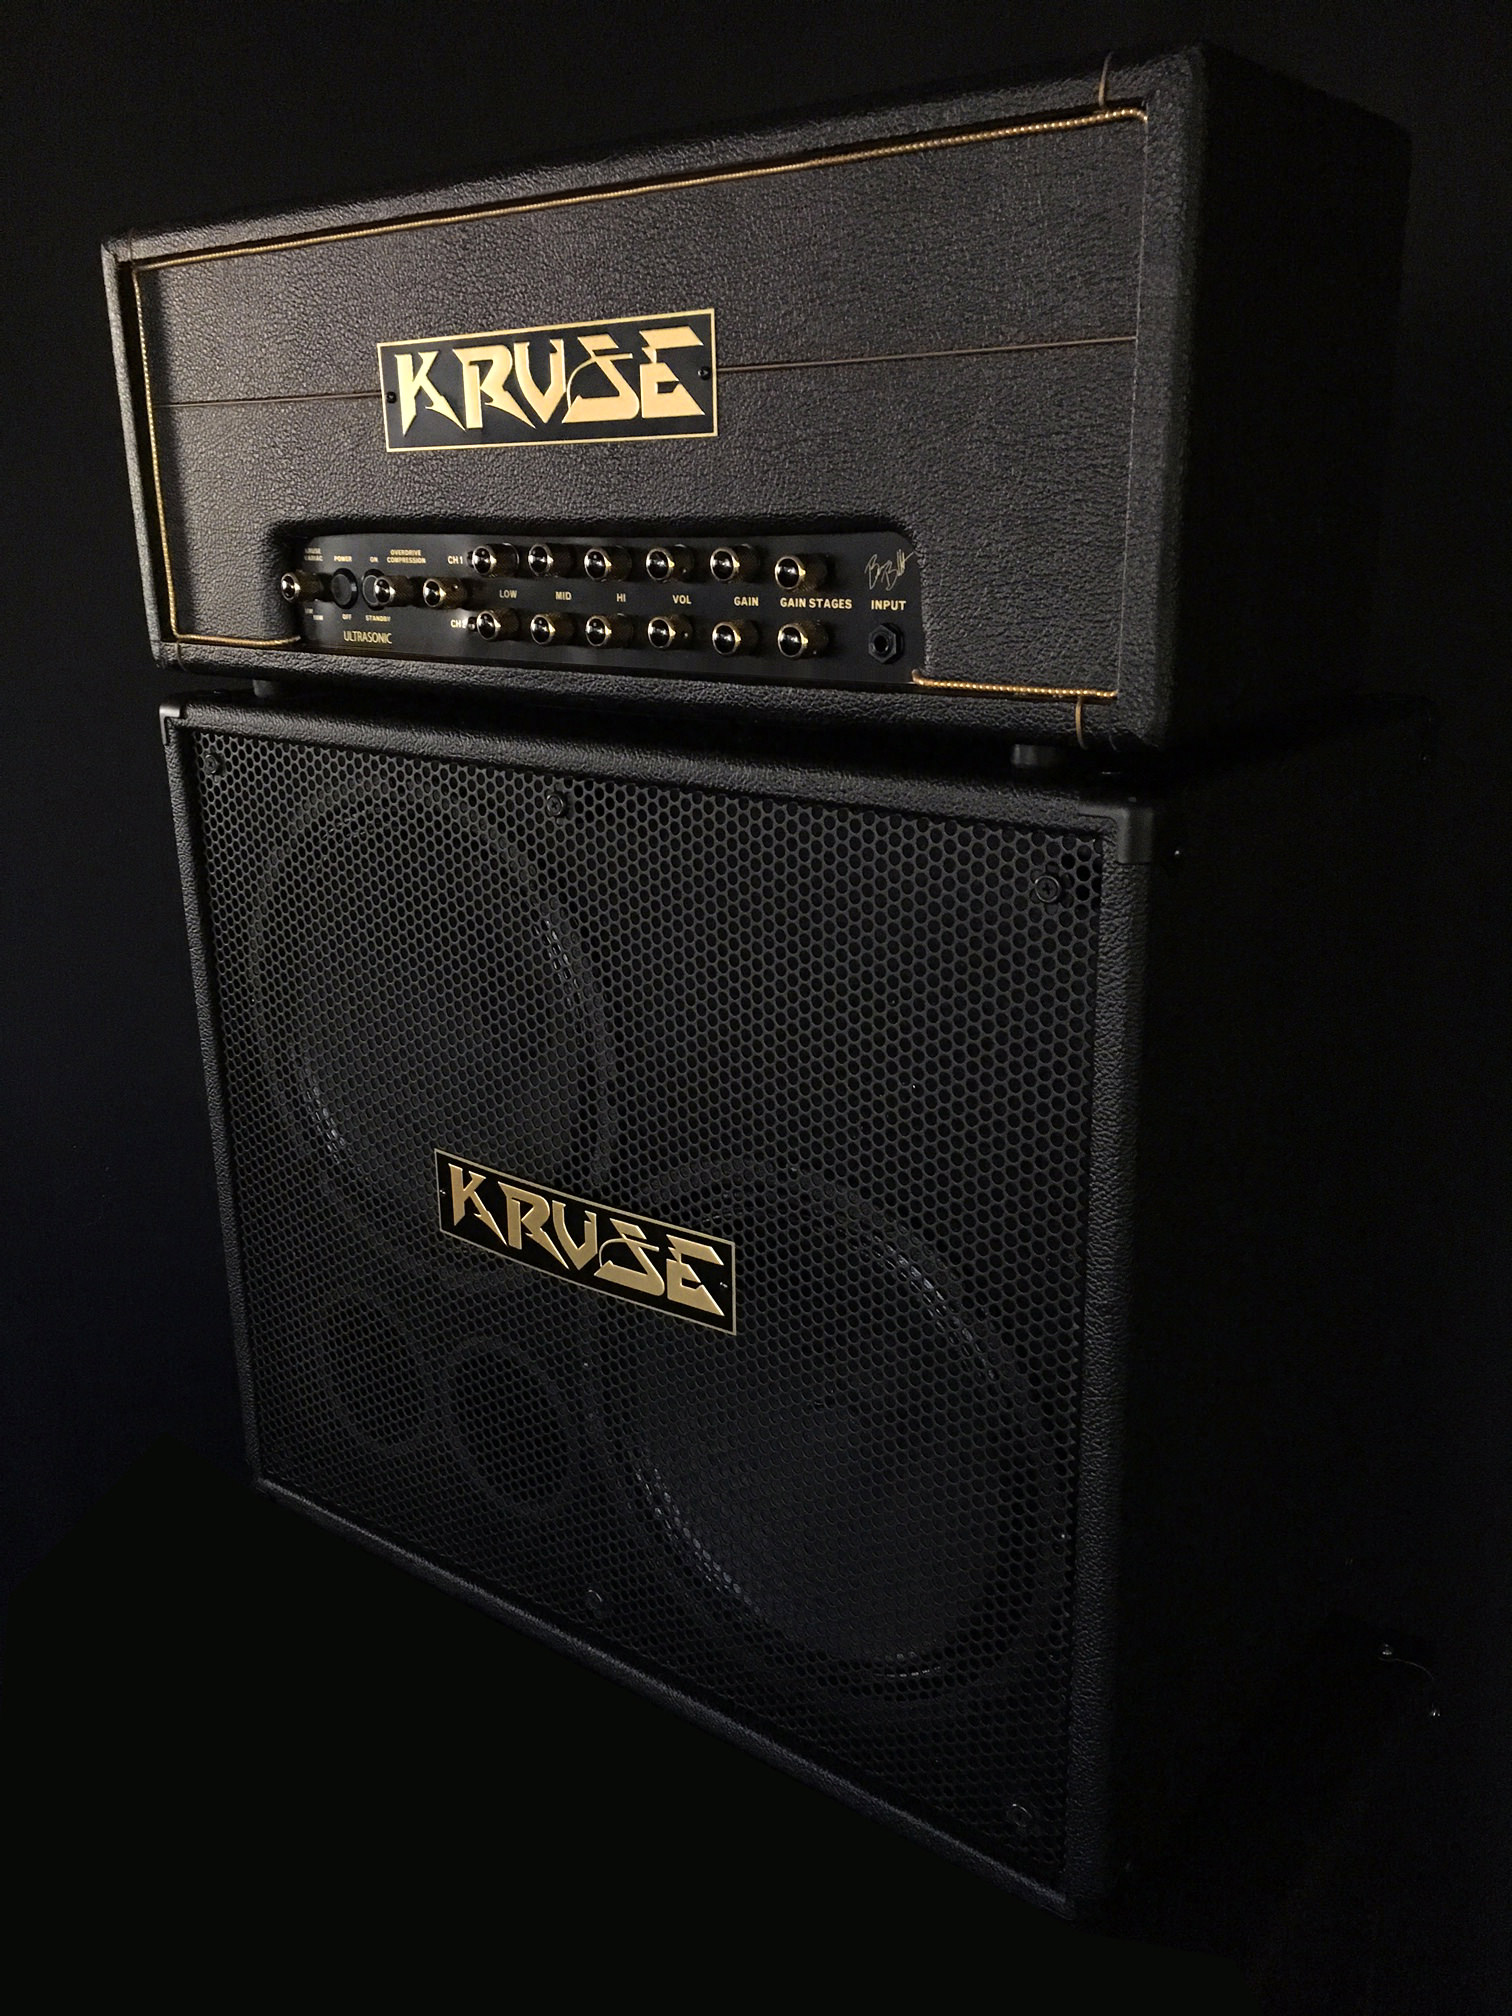 Cabs Kruse 2x12 Tolex Speaker Cabinets 3 Way Switch A Built In Rotary Selects Either The C 75 Or 65 Alone Both Speakers Combined For Totally Different Tones